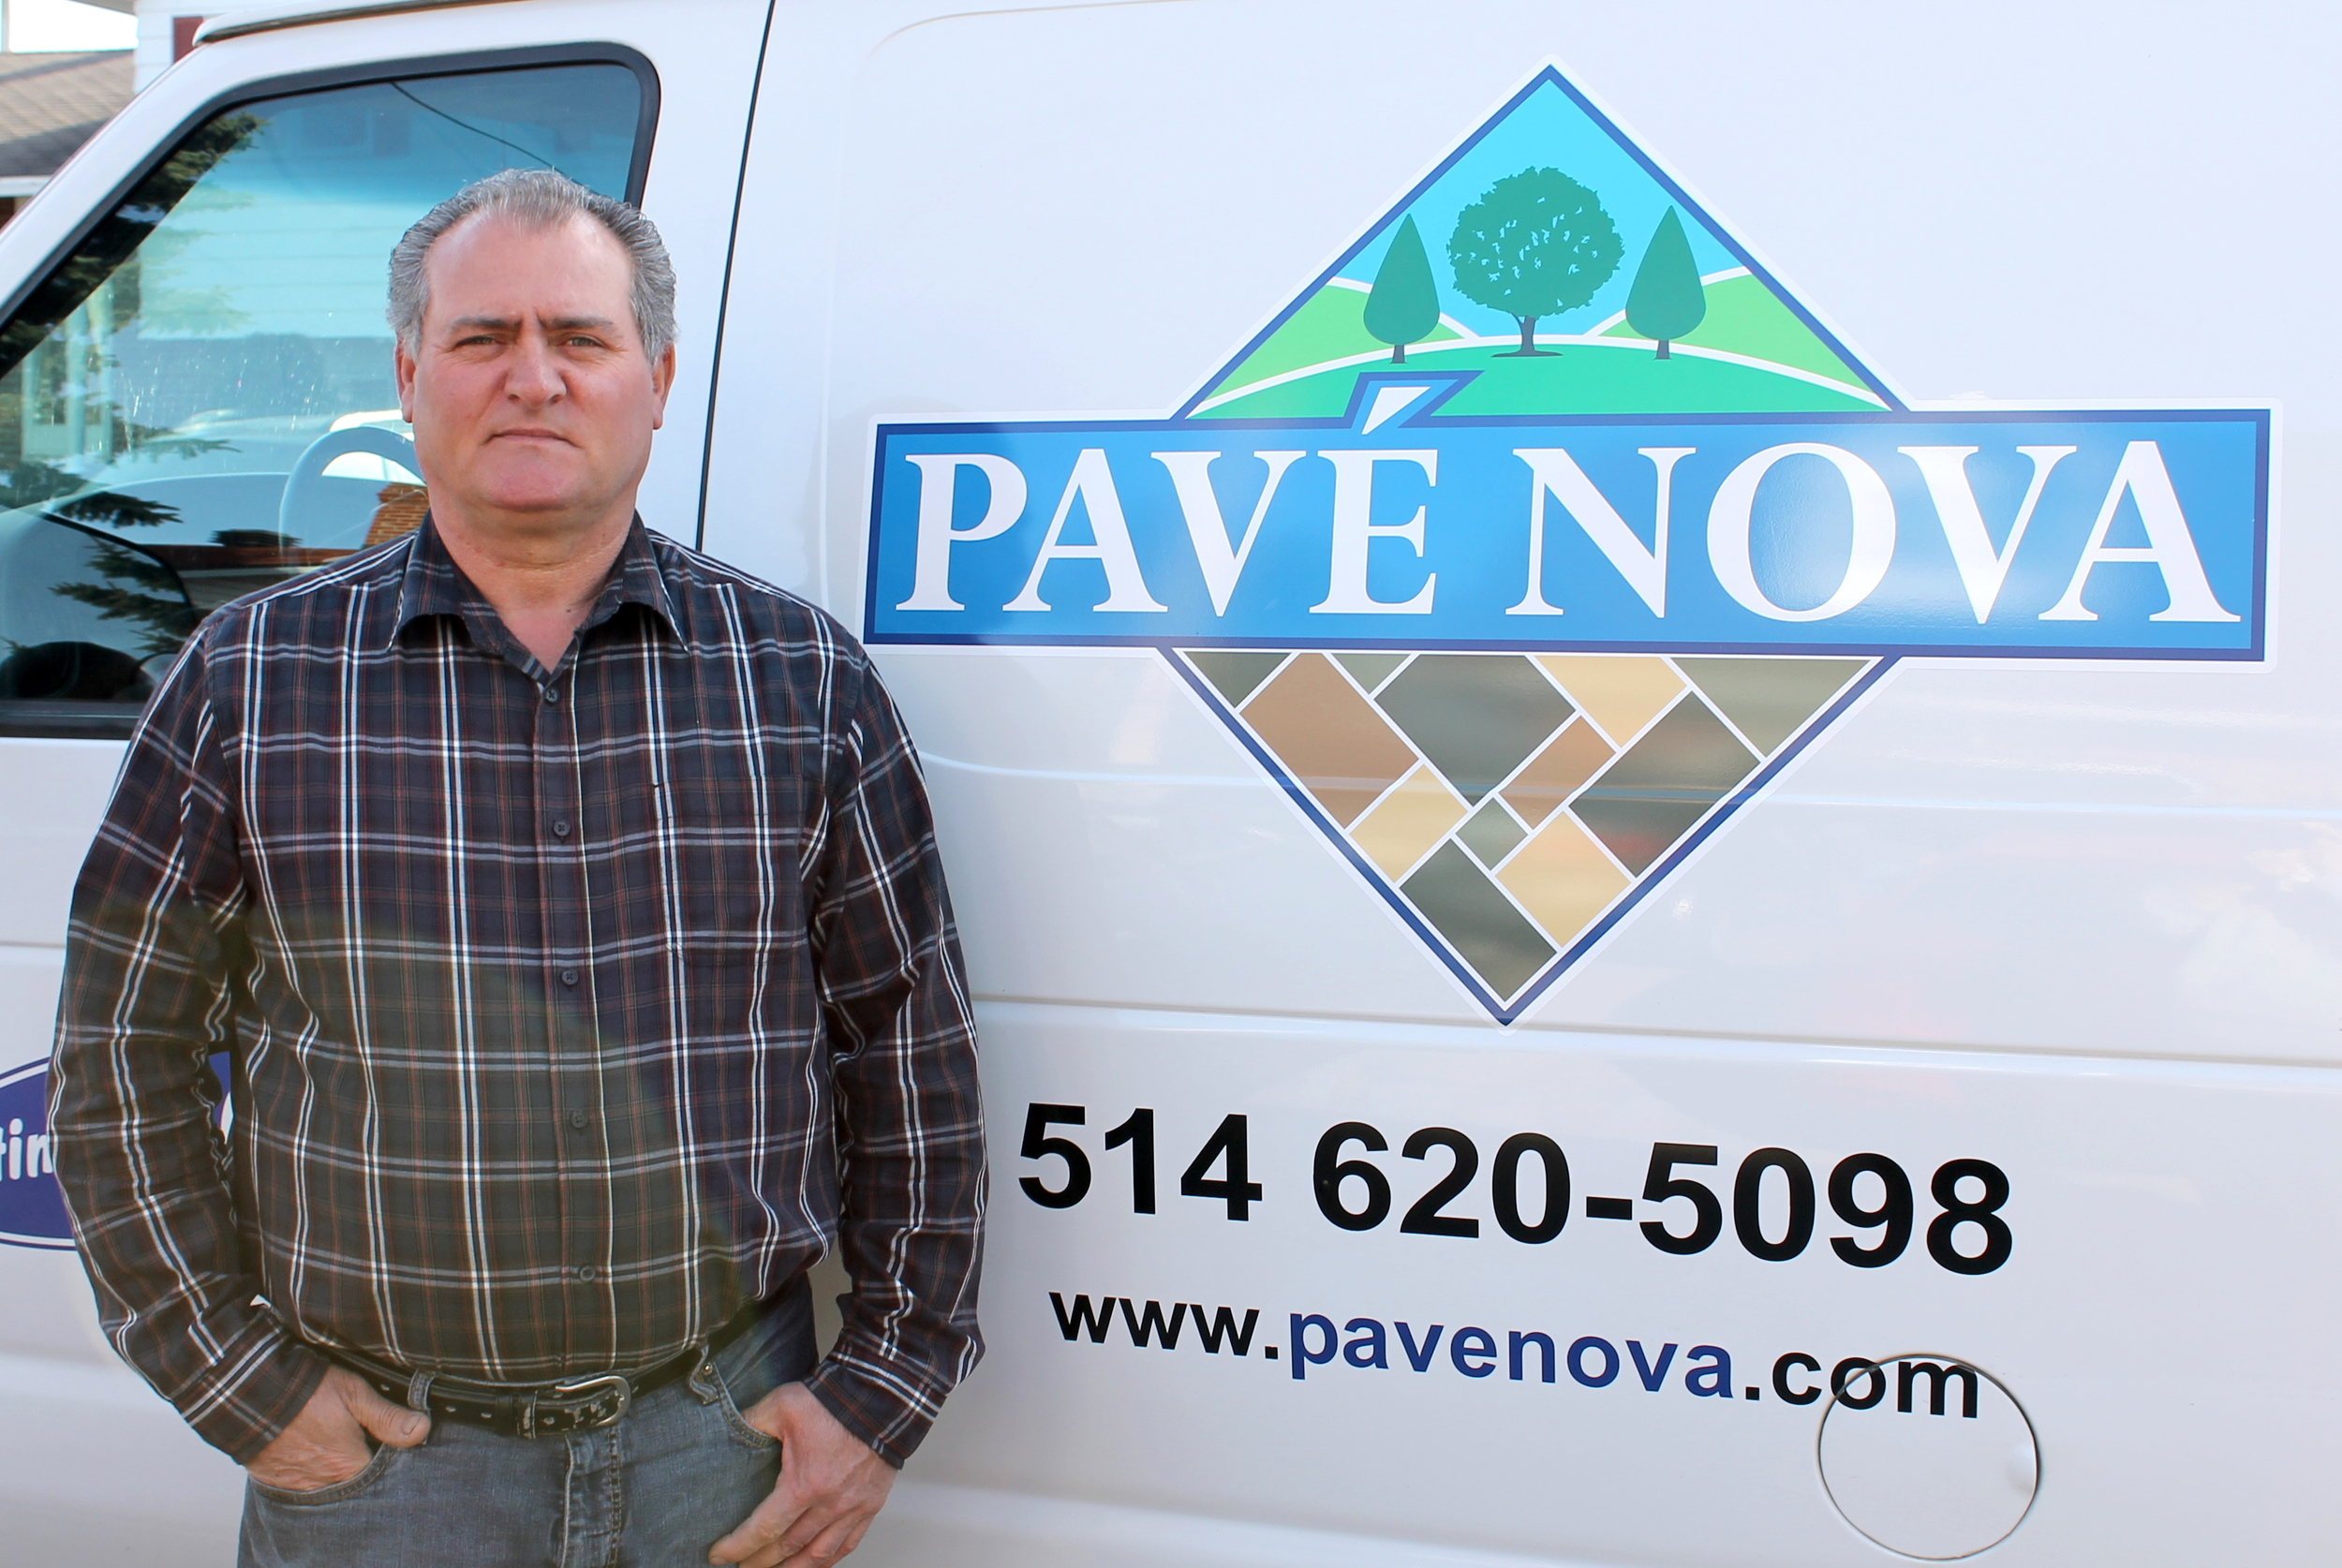 Gabriele Rossi , owner of Pavé Nova, has been in the landscaping business forover 25 years.